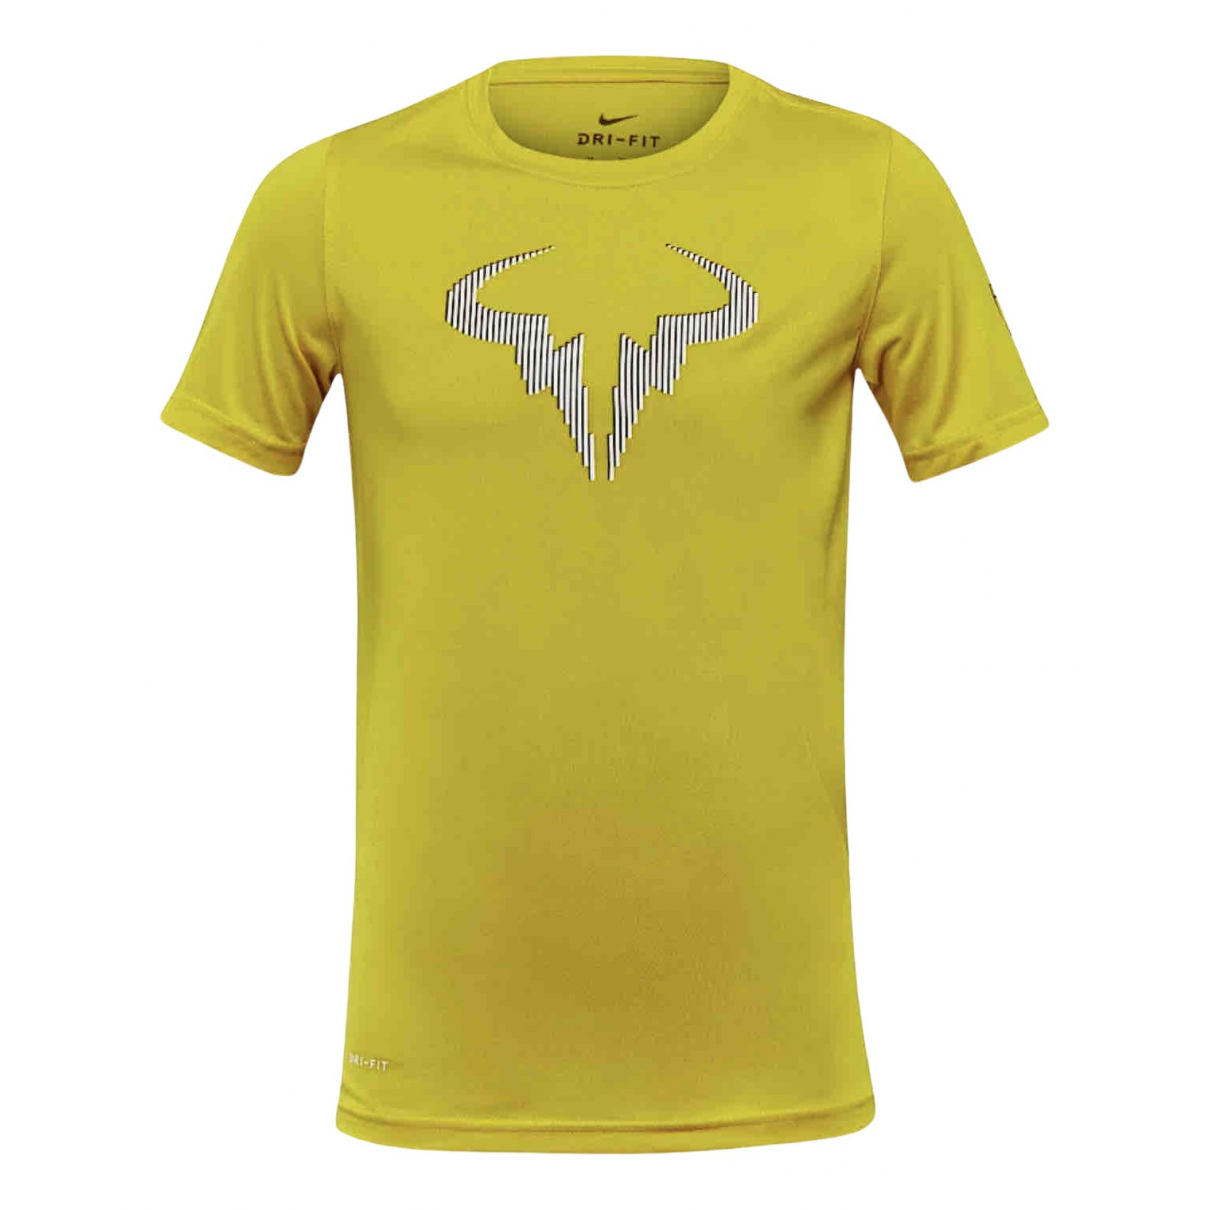 Nike N Yellow  top for Kids 8 years - up to 128cm FR